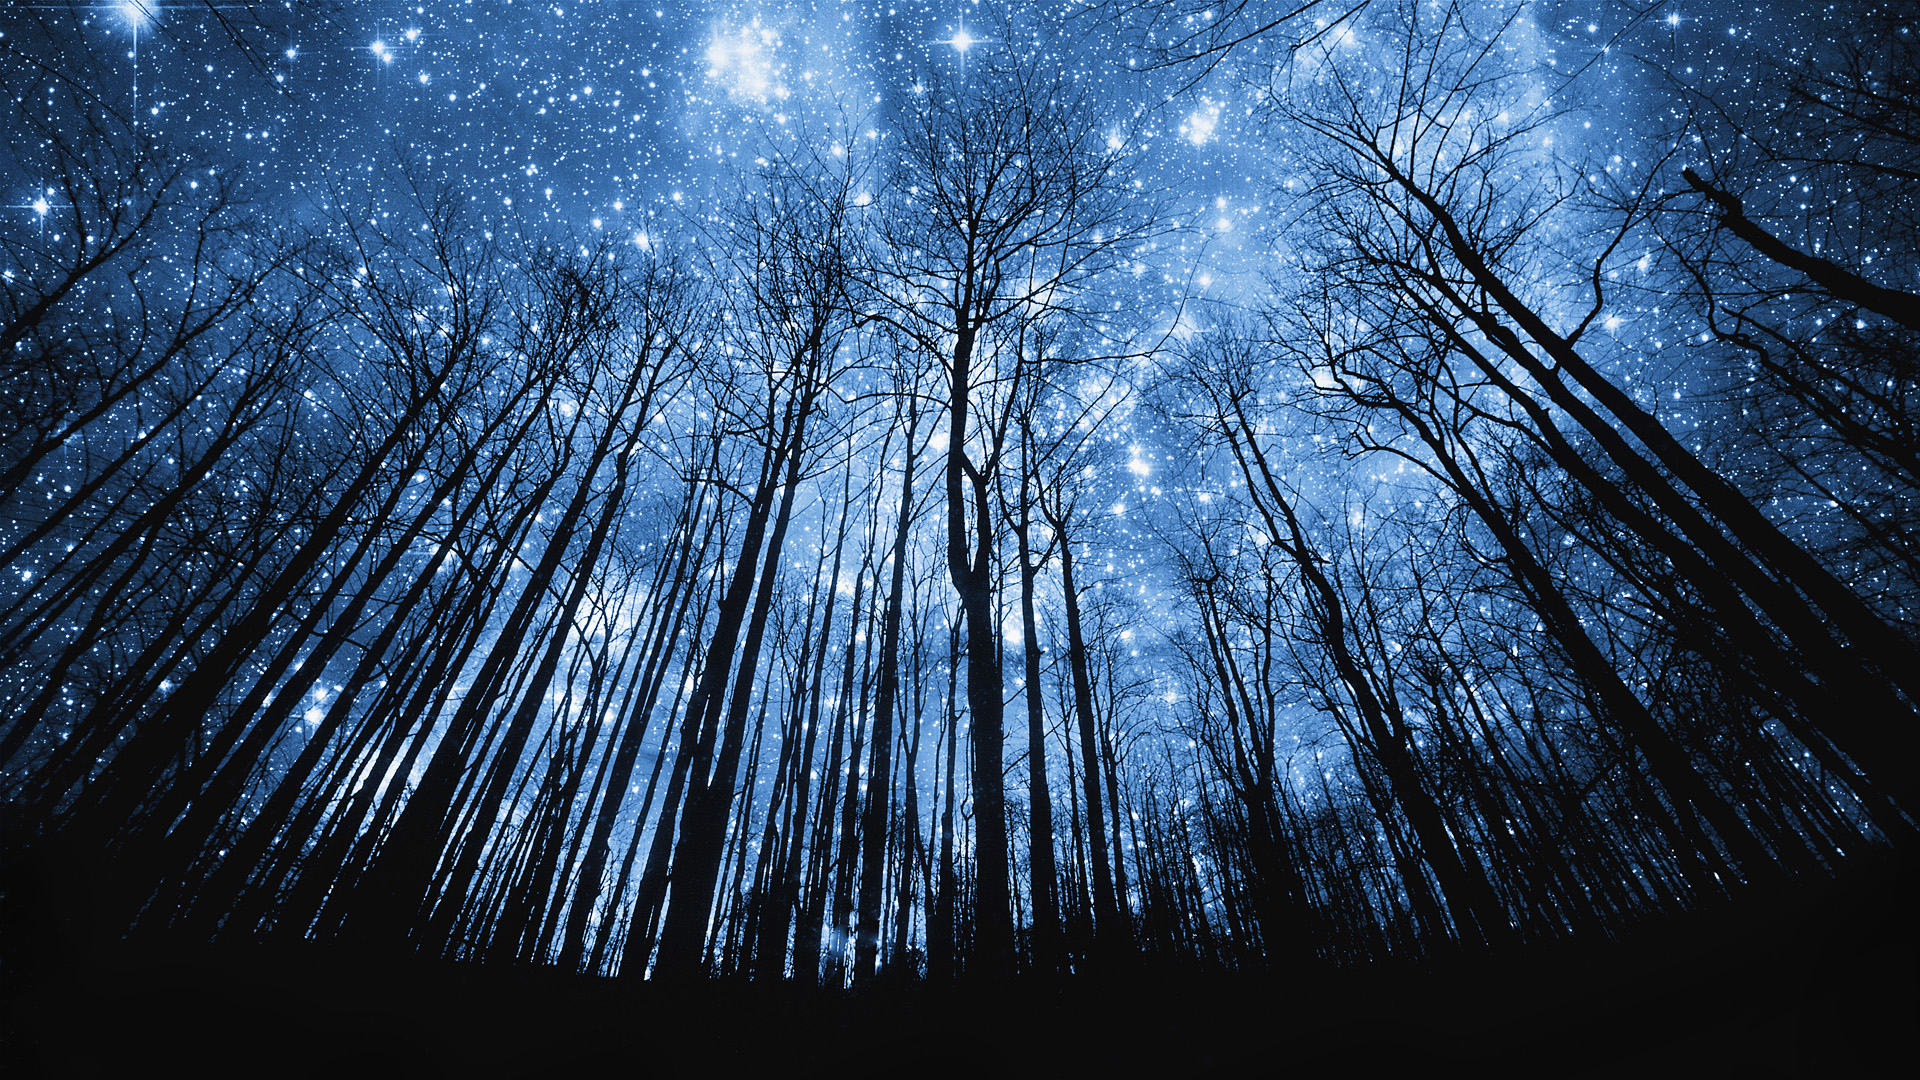 Hd wallpaper night - Stars Shining On The Night Sky Above The Forest Full Hd High Quality